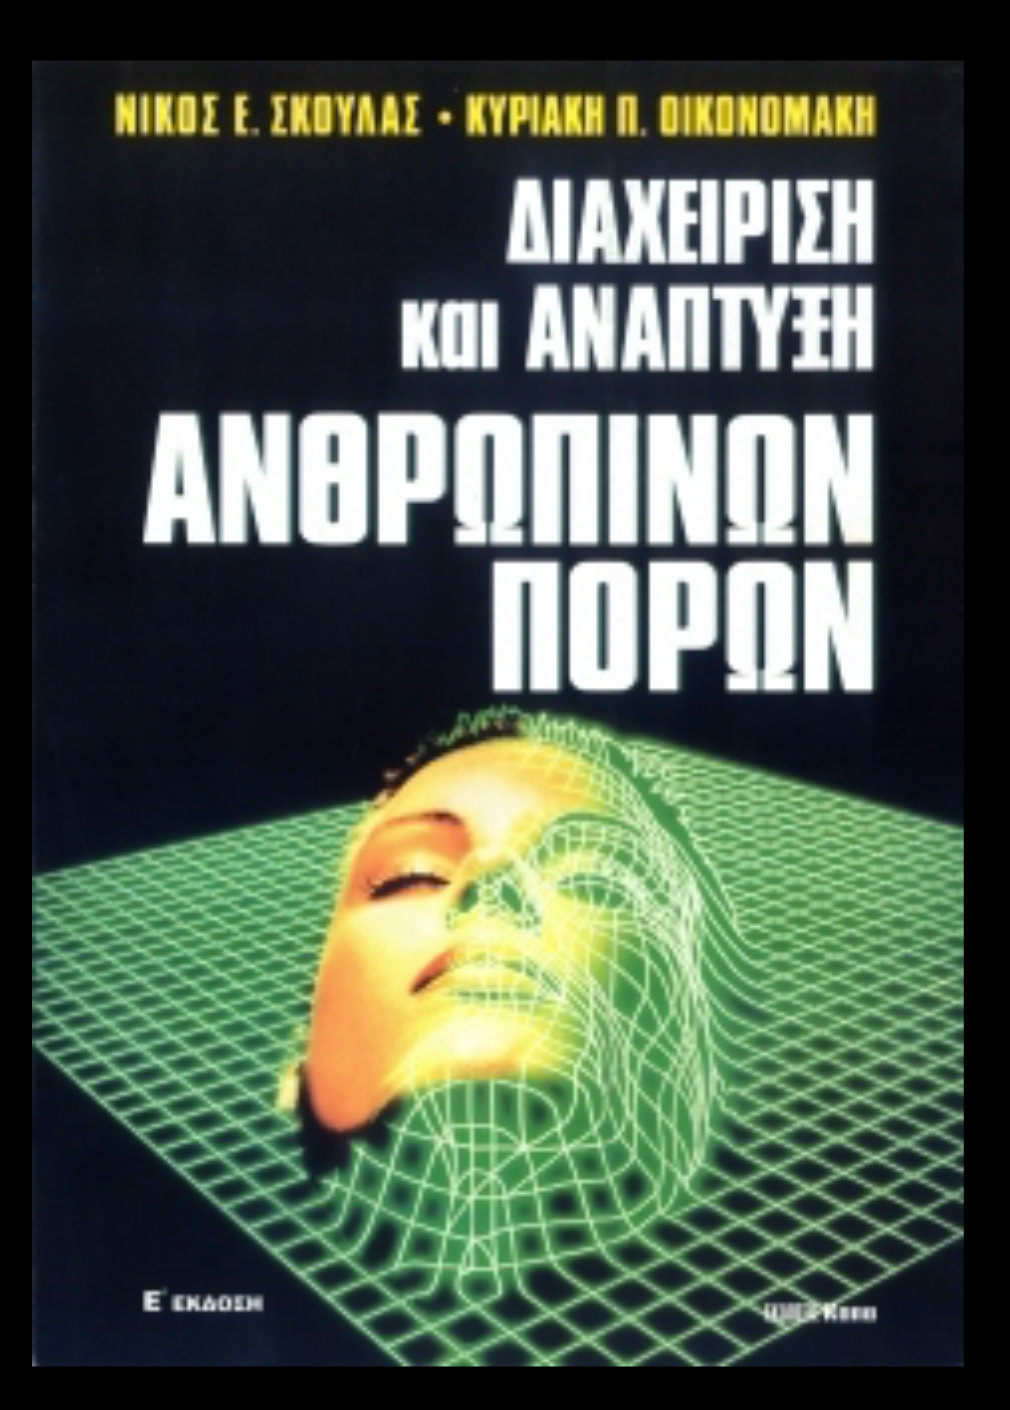 anthropinonporon